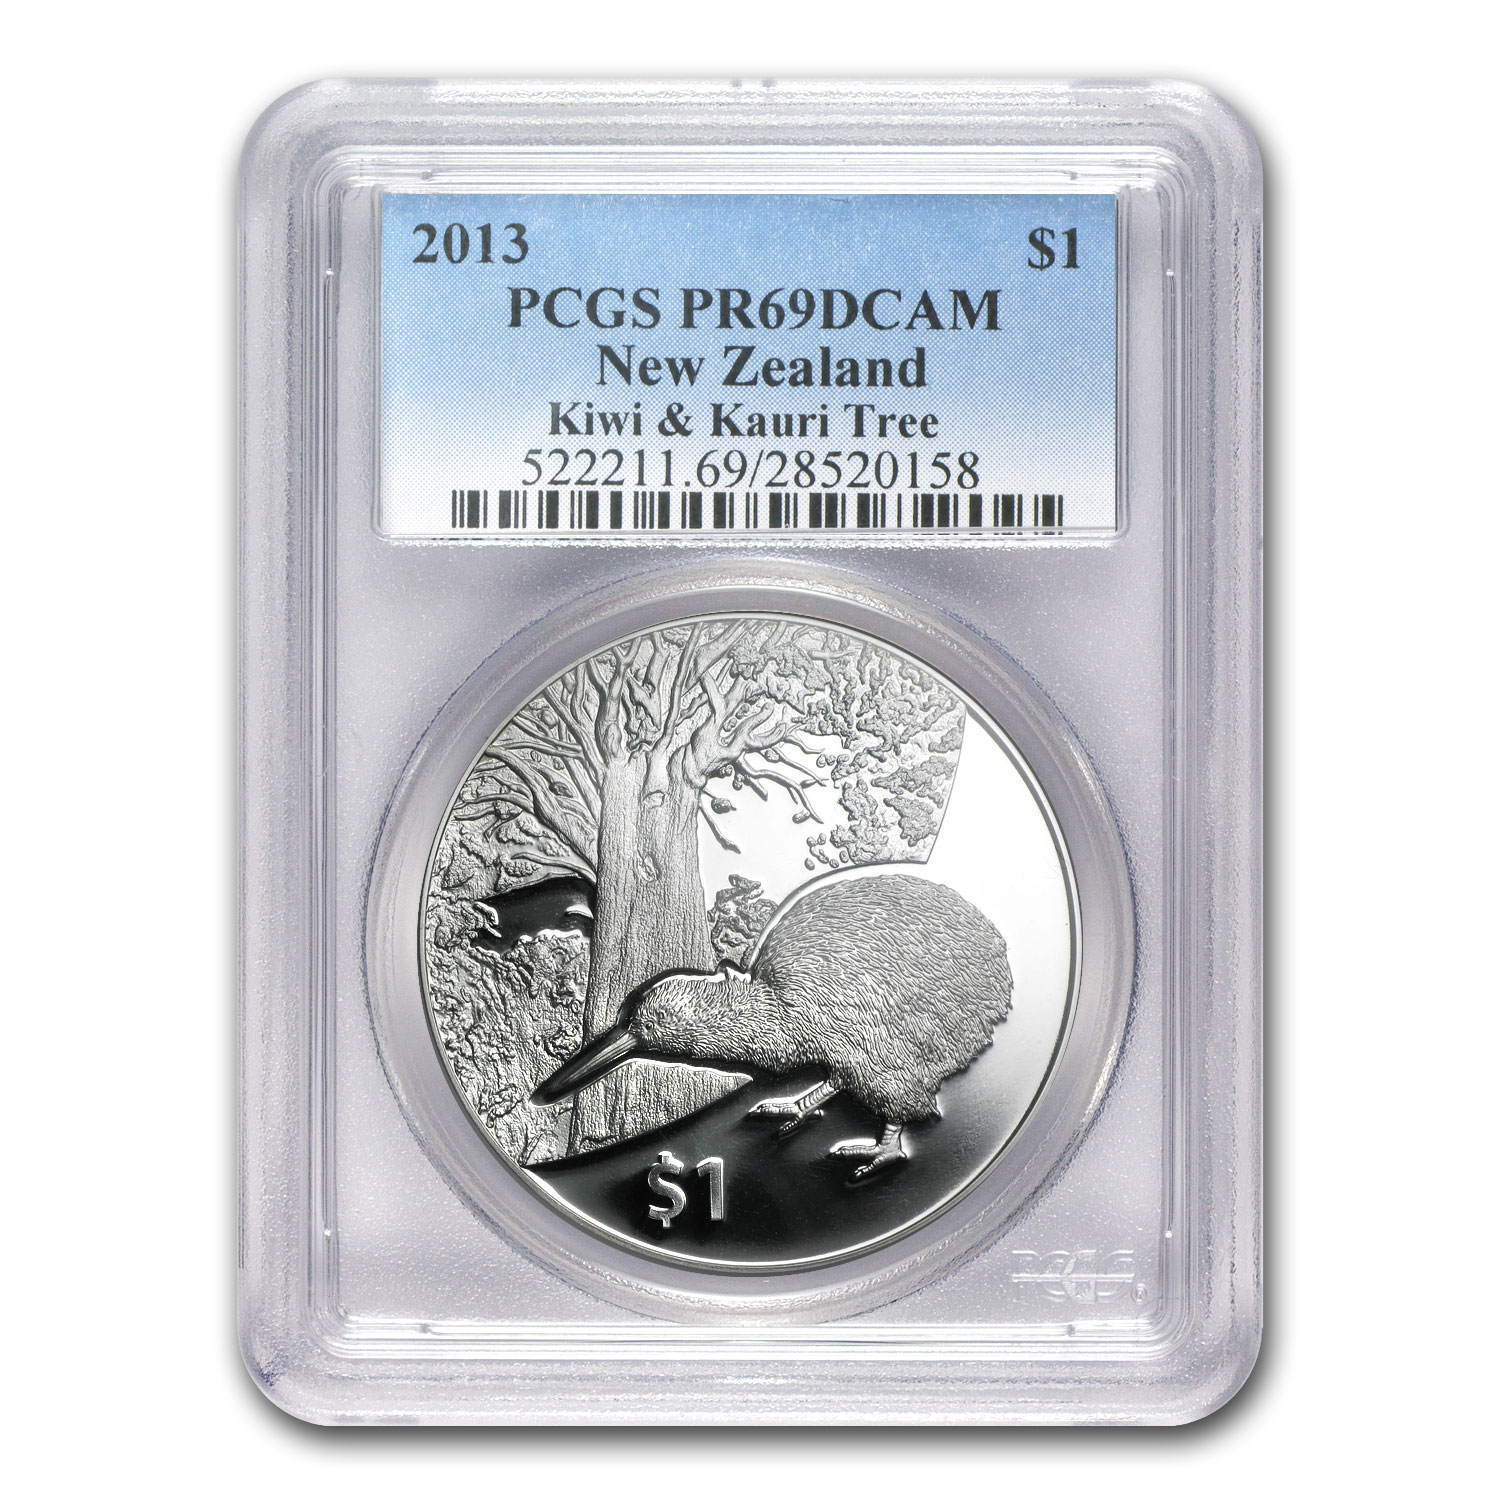 2013 New Zealand 1 oz Silver Treasures $1 Kiwi PR-69 PCGS